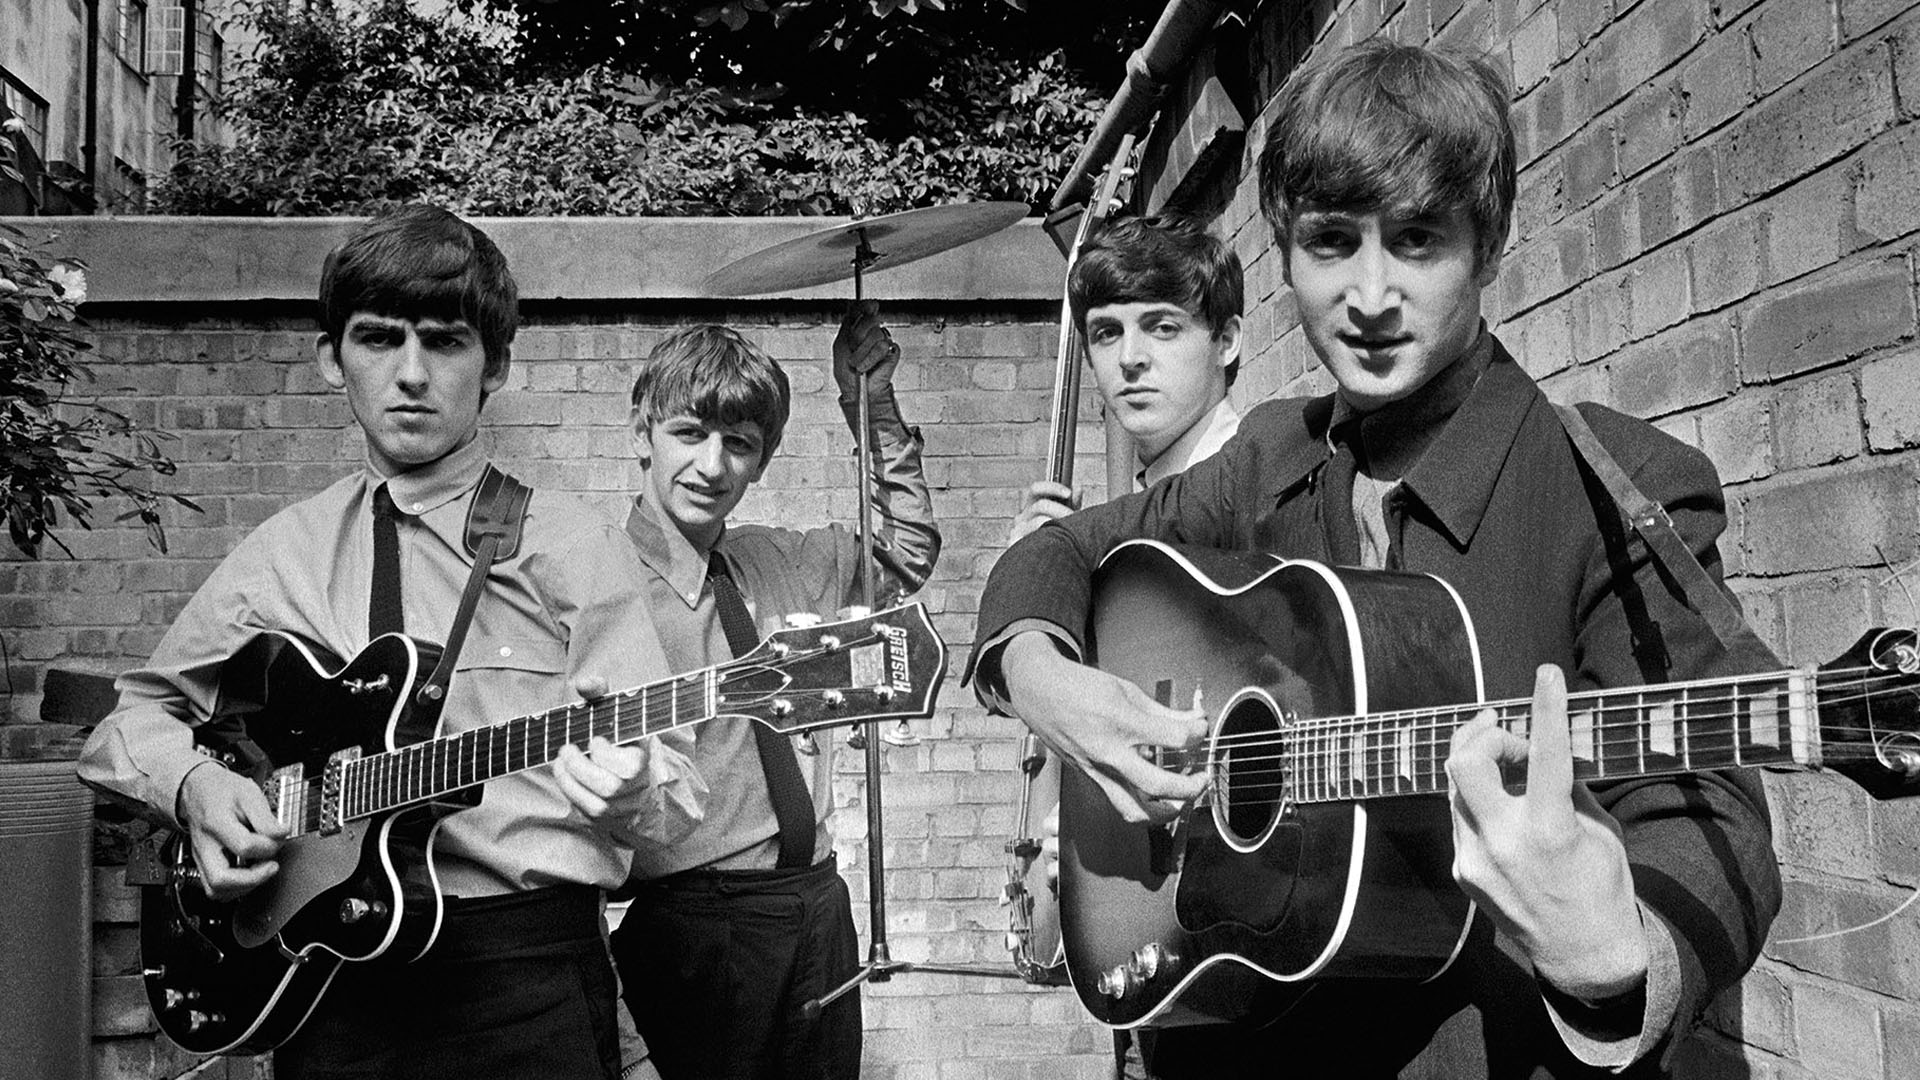 The Beatles - ICON: Music Through The Lens